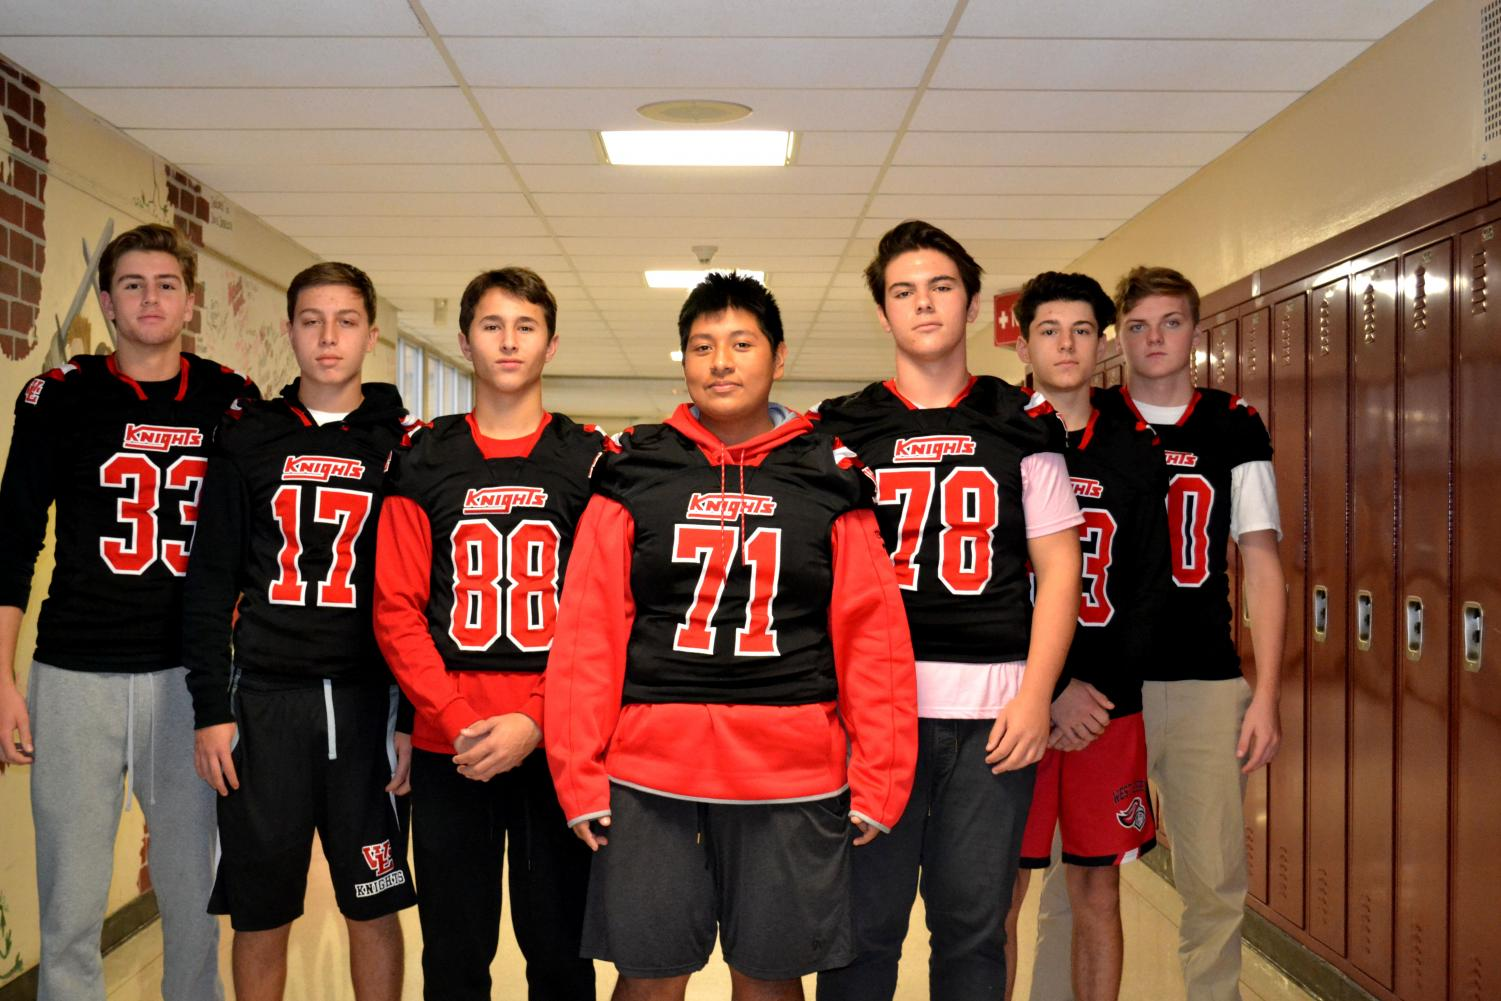 Football players show off their new uniforms.